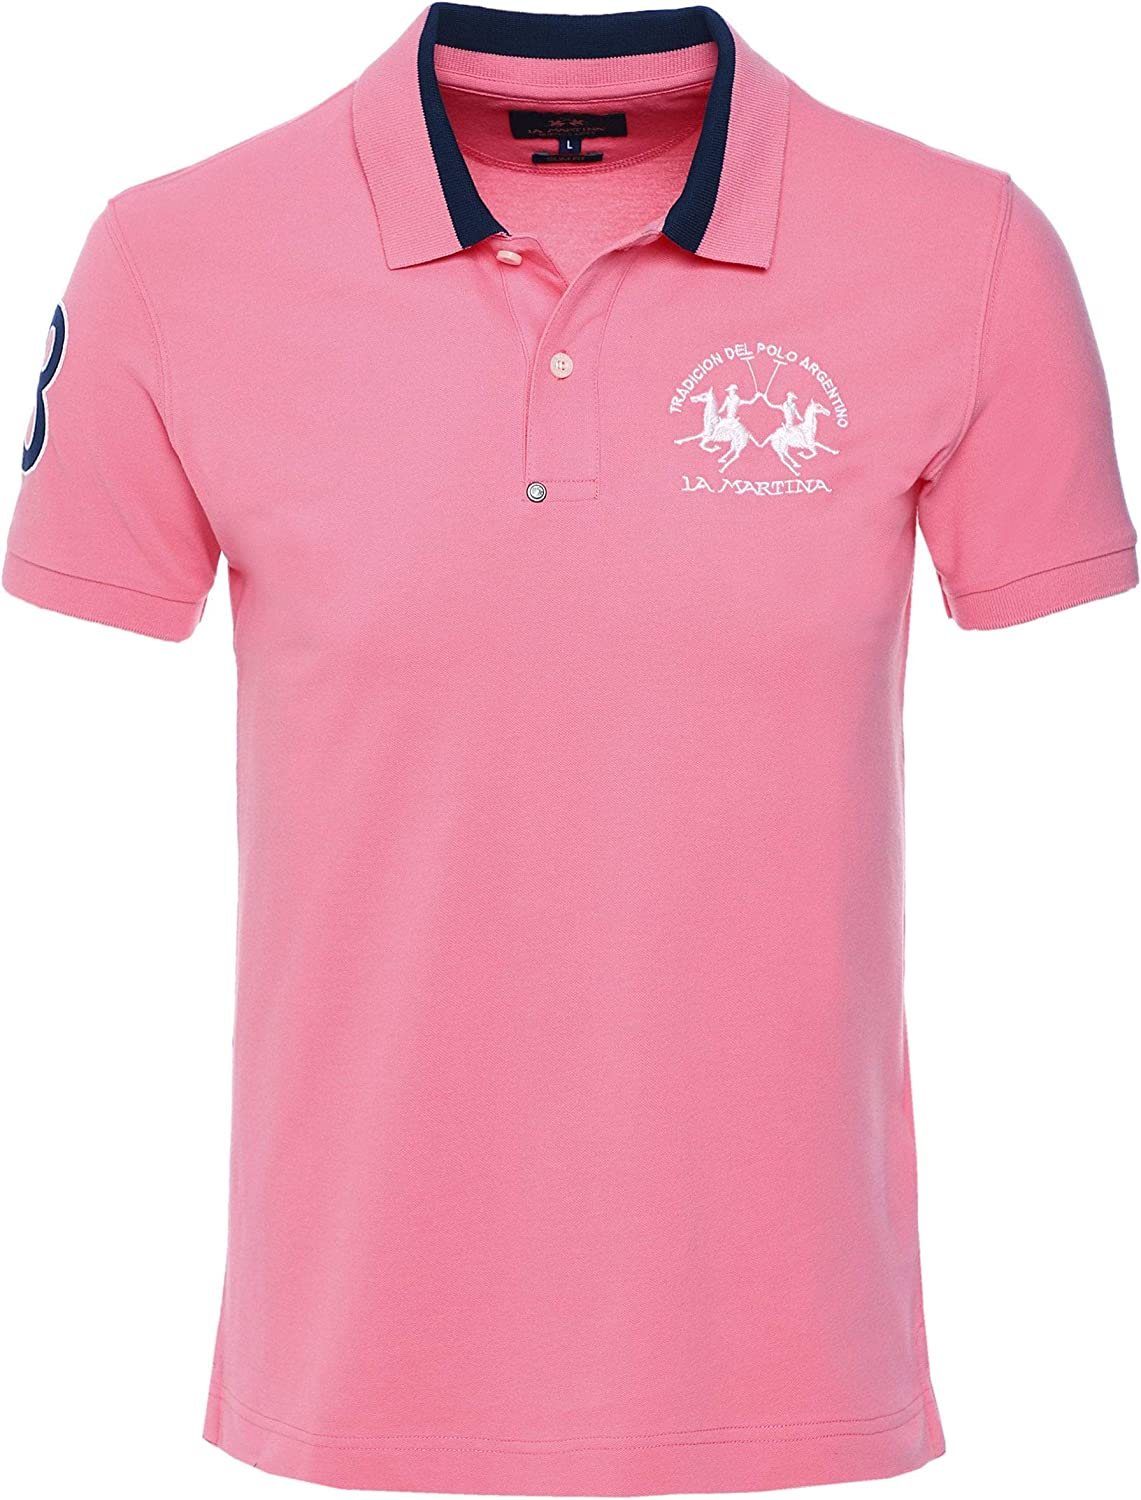 La Martina Hombres Camisa de Polo Enea Slim Fit Color De Rosa L ...